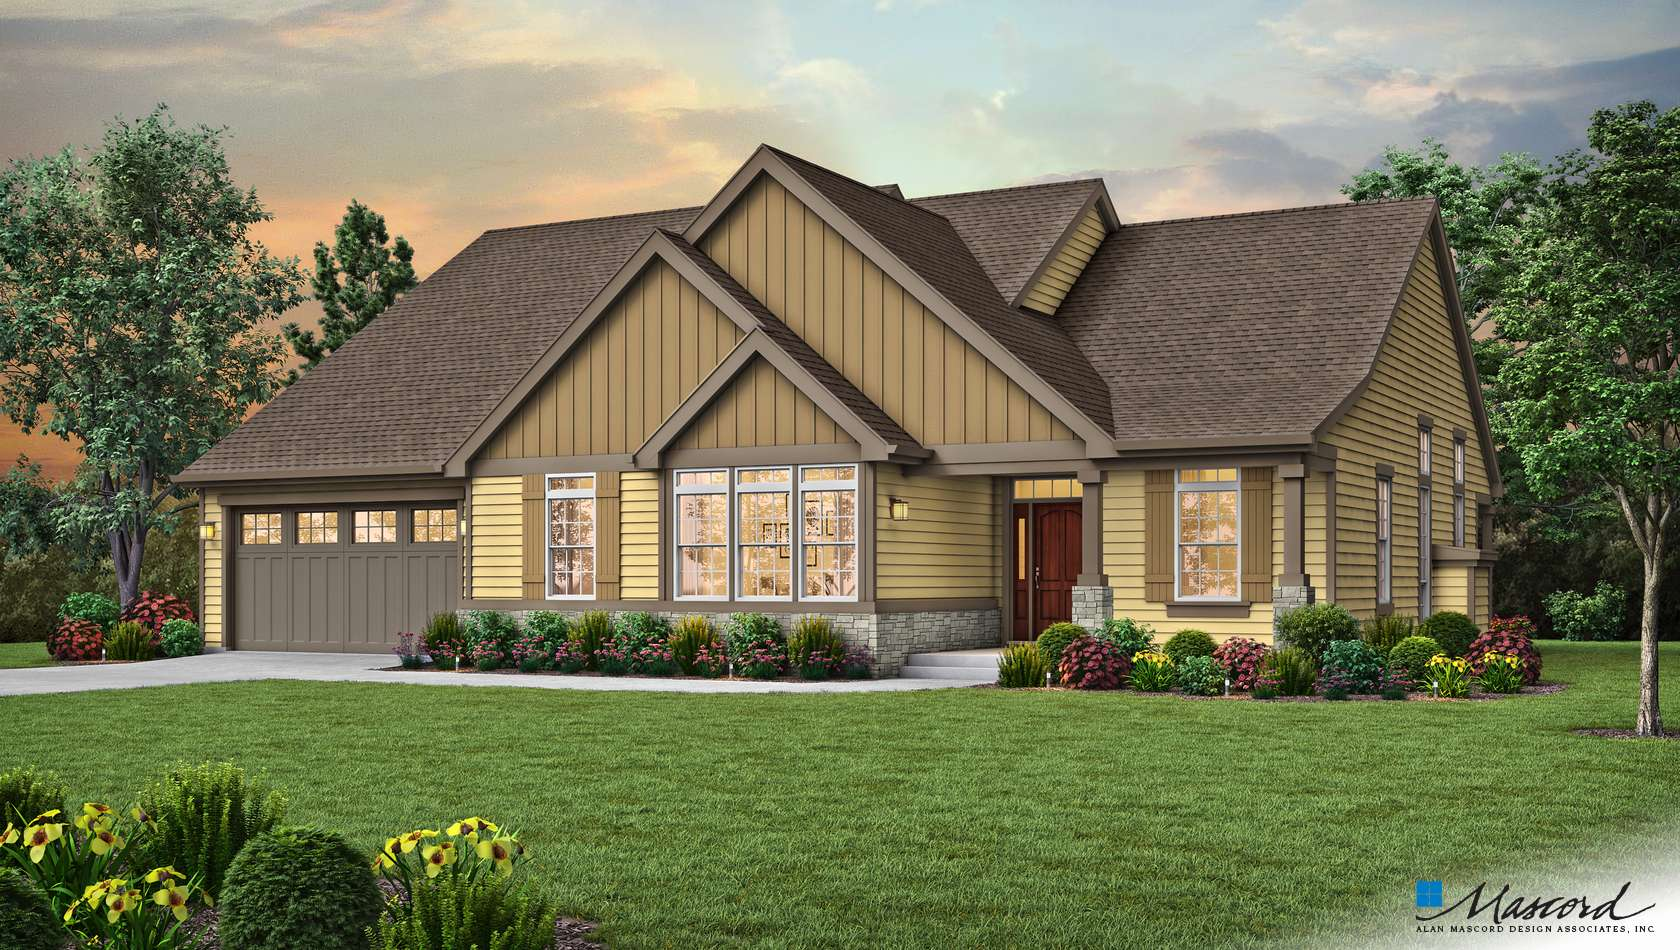 Main image for house plan 1231E: The La Puente